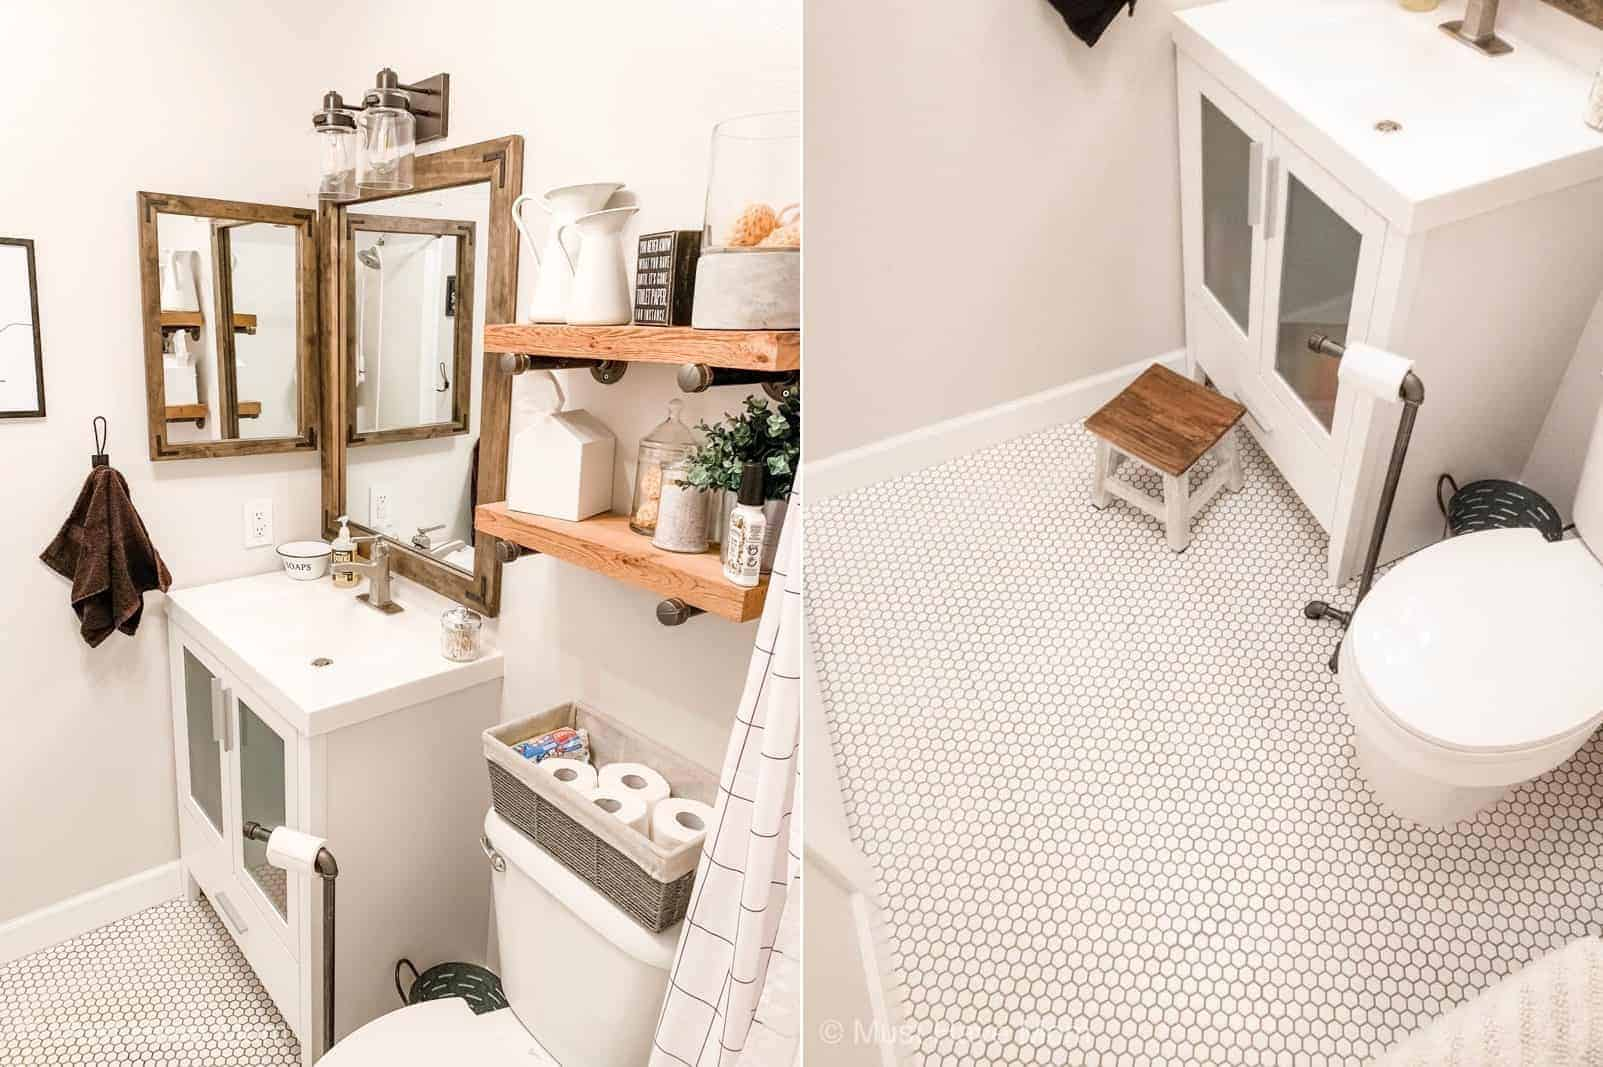 here-are-the-prices-of-the-bathroom-updates-3494399